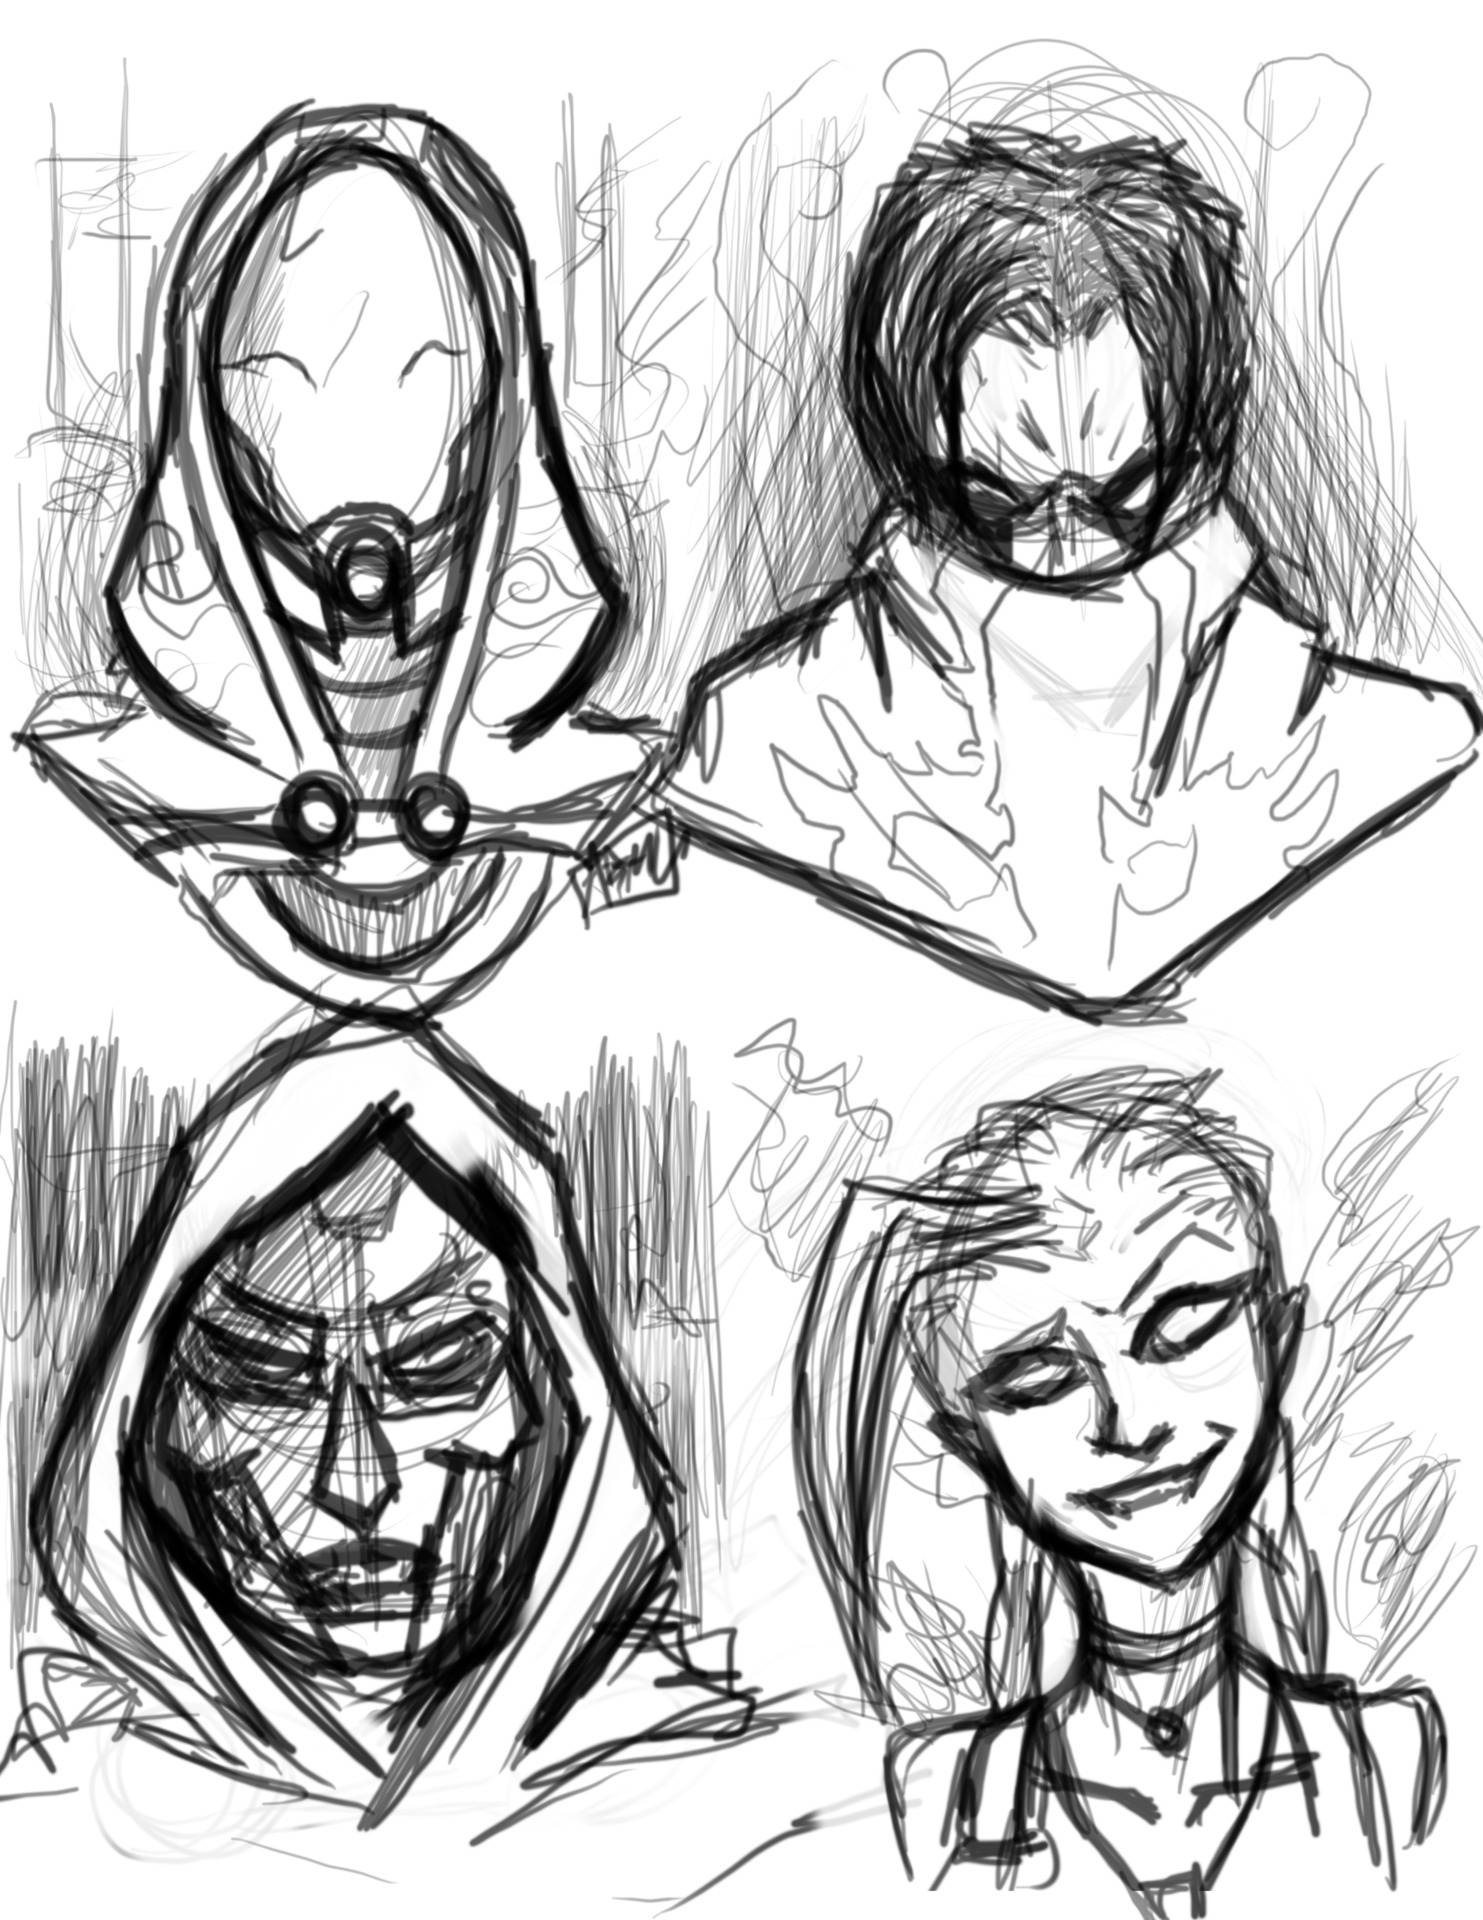 Some random character busts